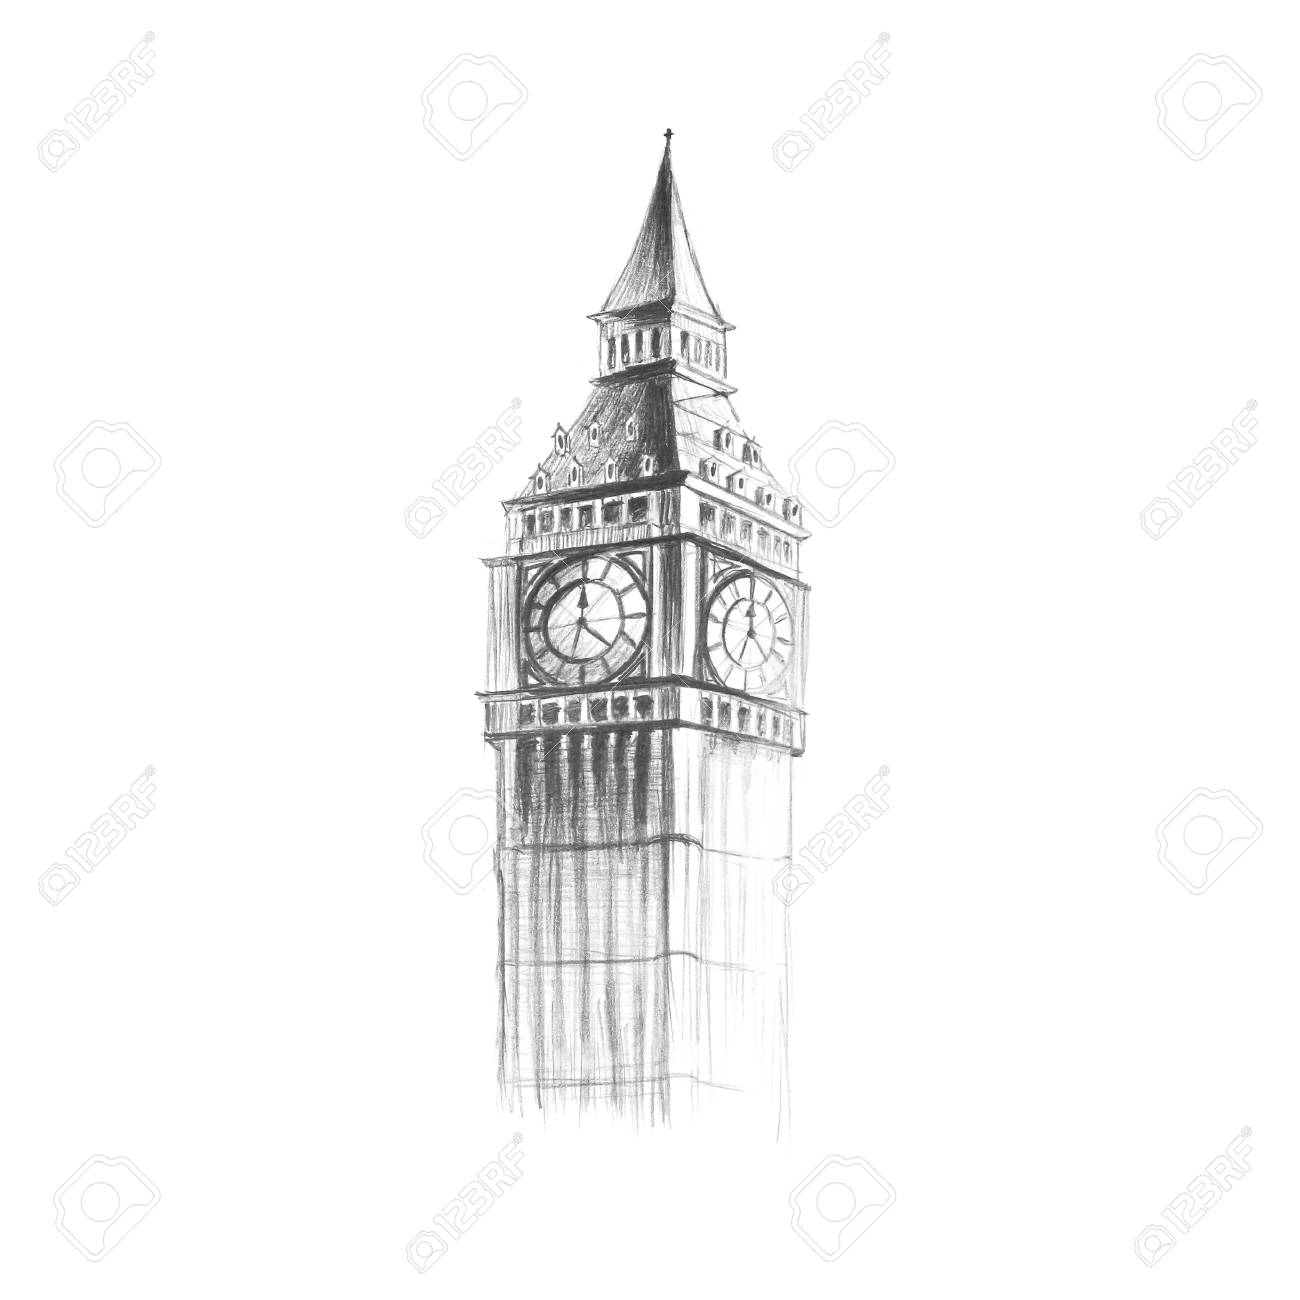 Big ben painted with a pencil hand drawn close up isolated